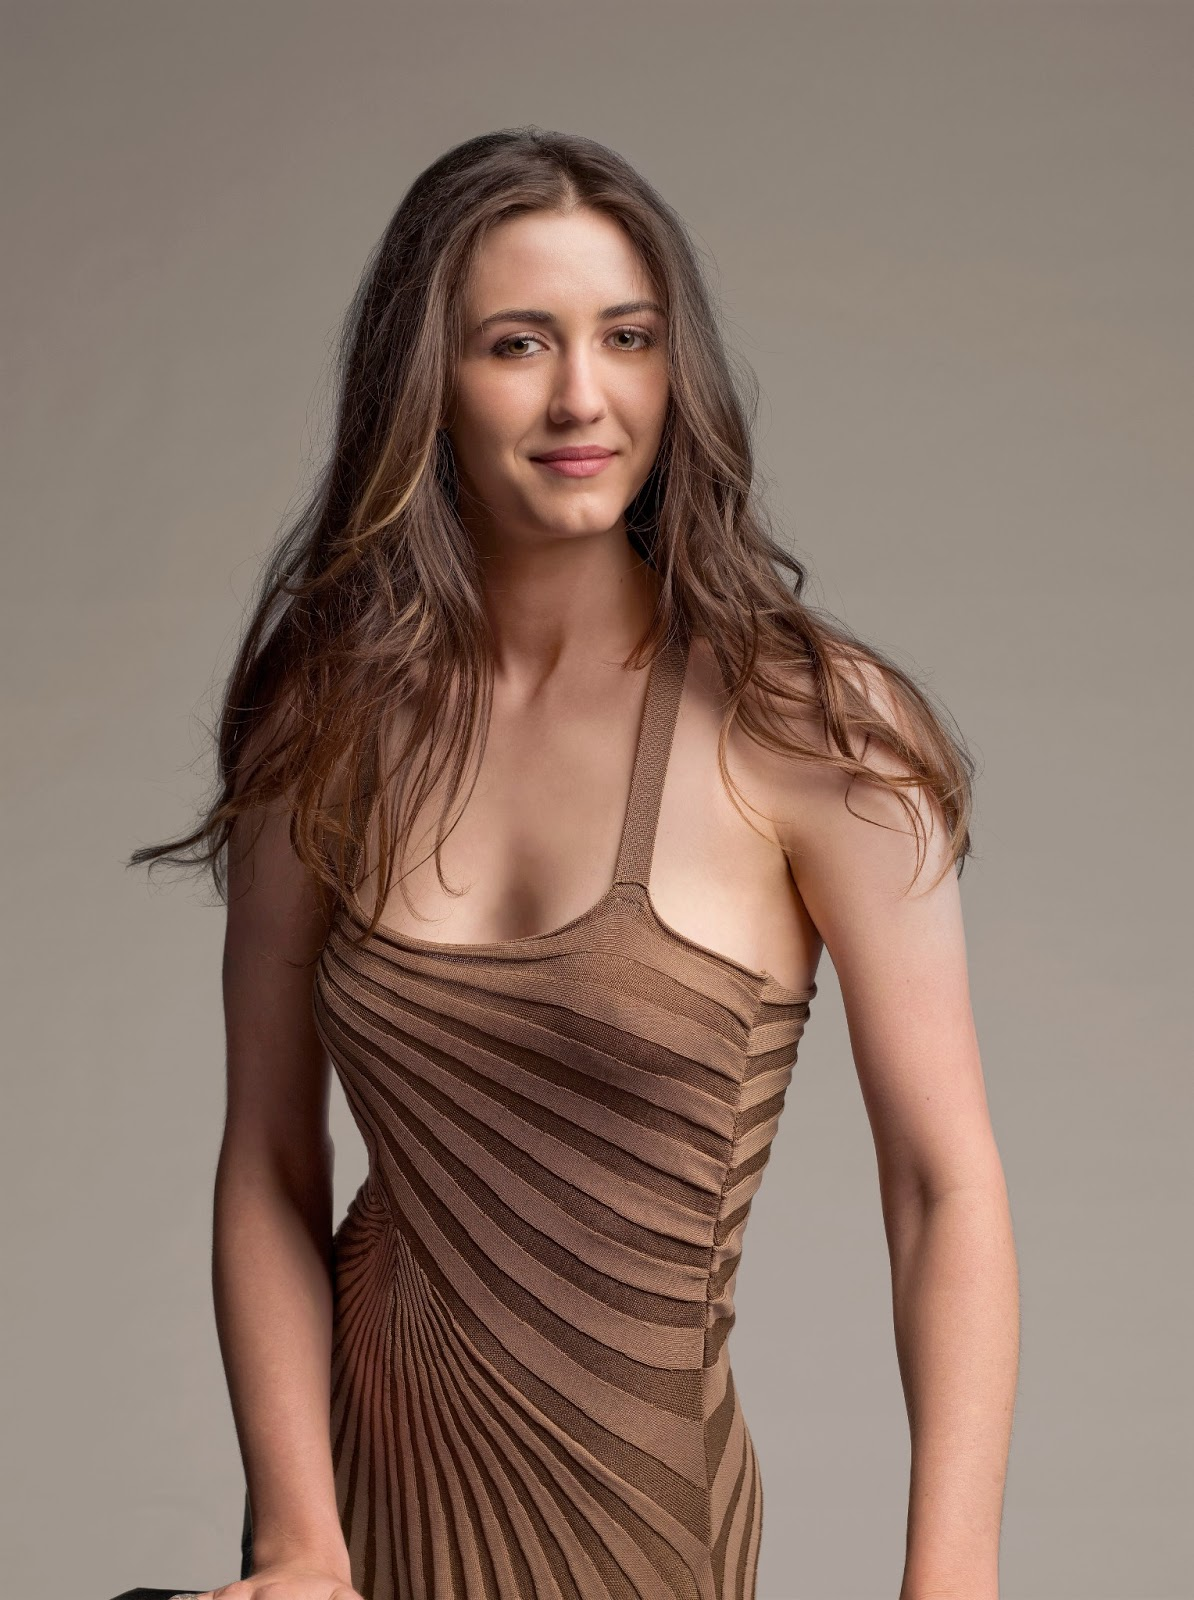 madeline zima hot -#main